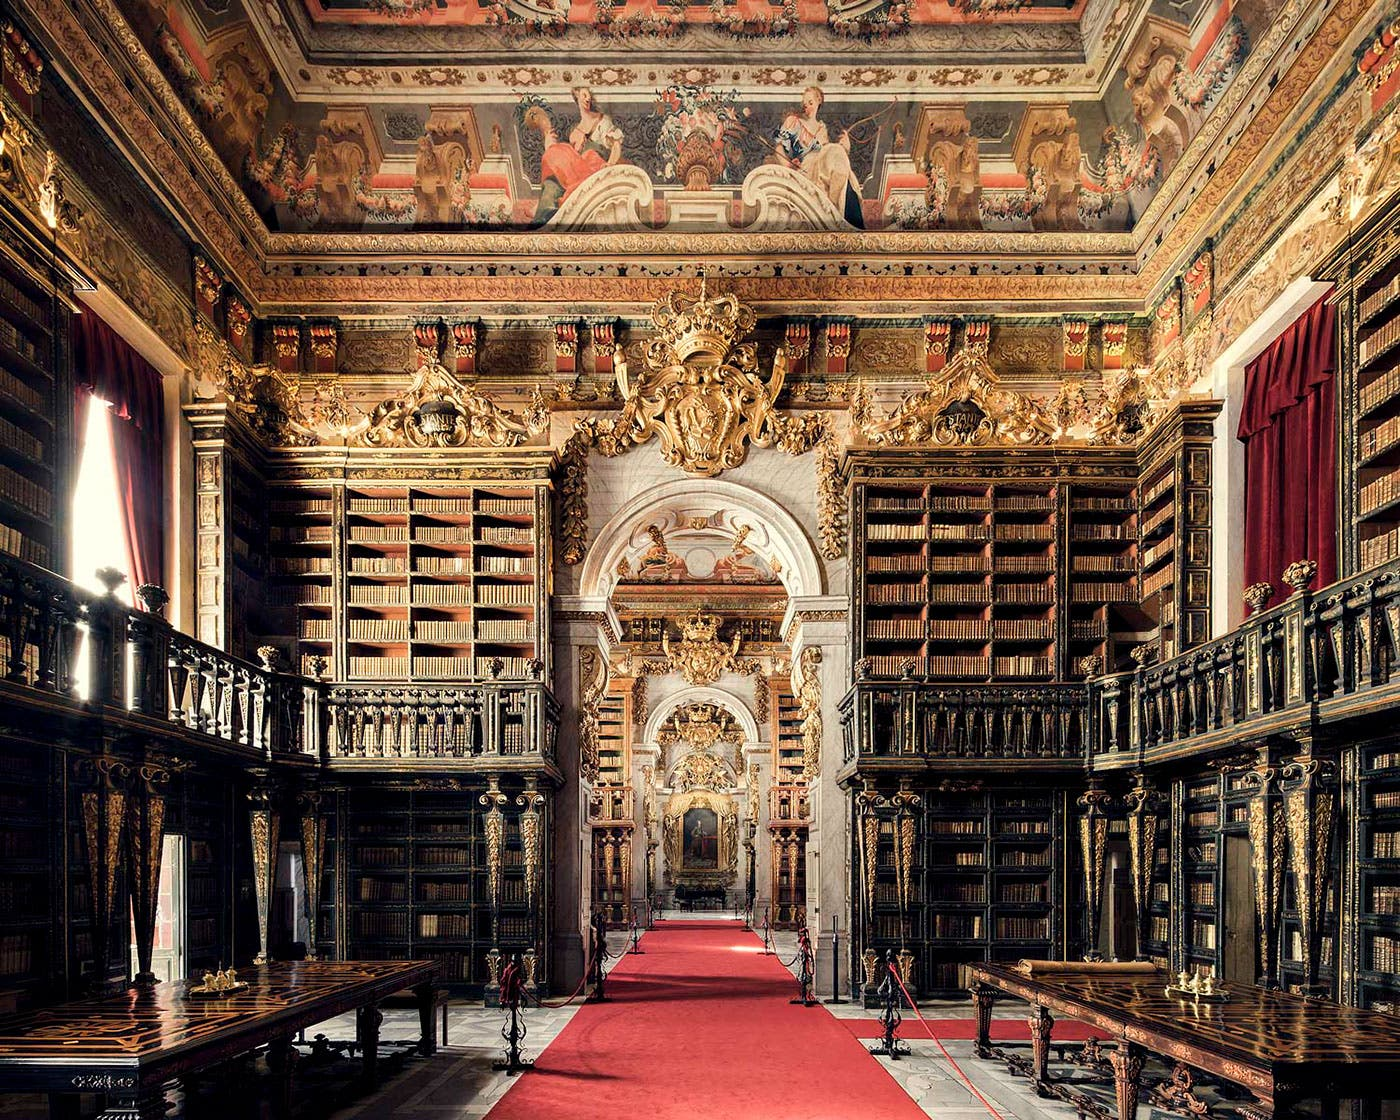 Thibaud Poirier Showcases the Stunning Beauty of Europe's Timeless Libraries